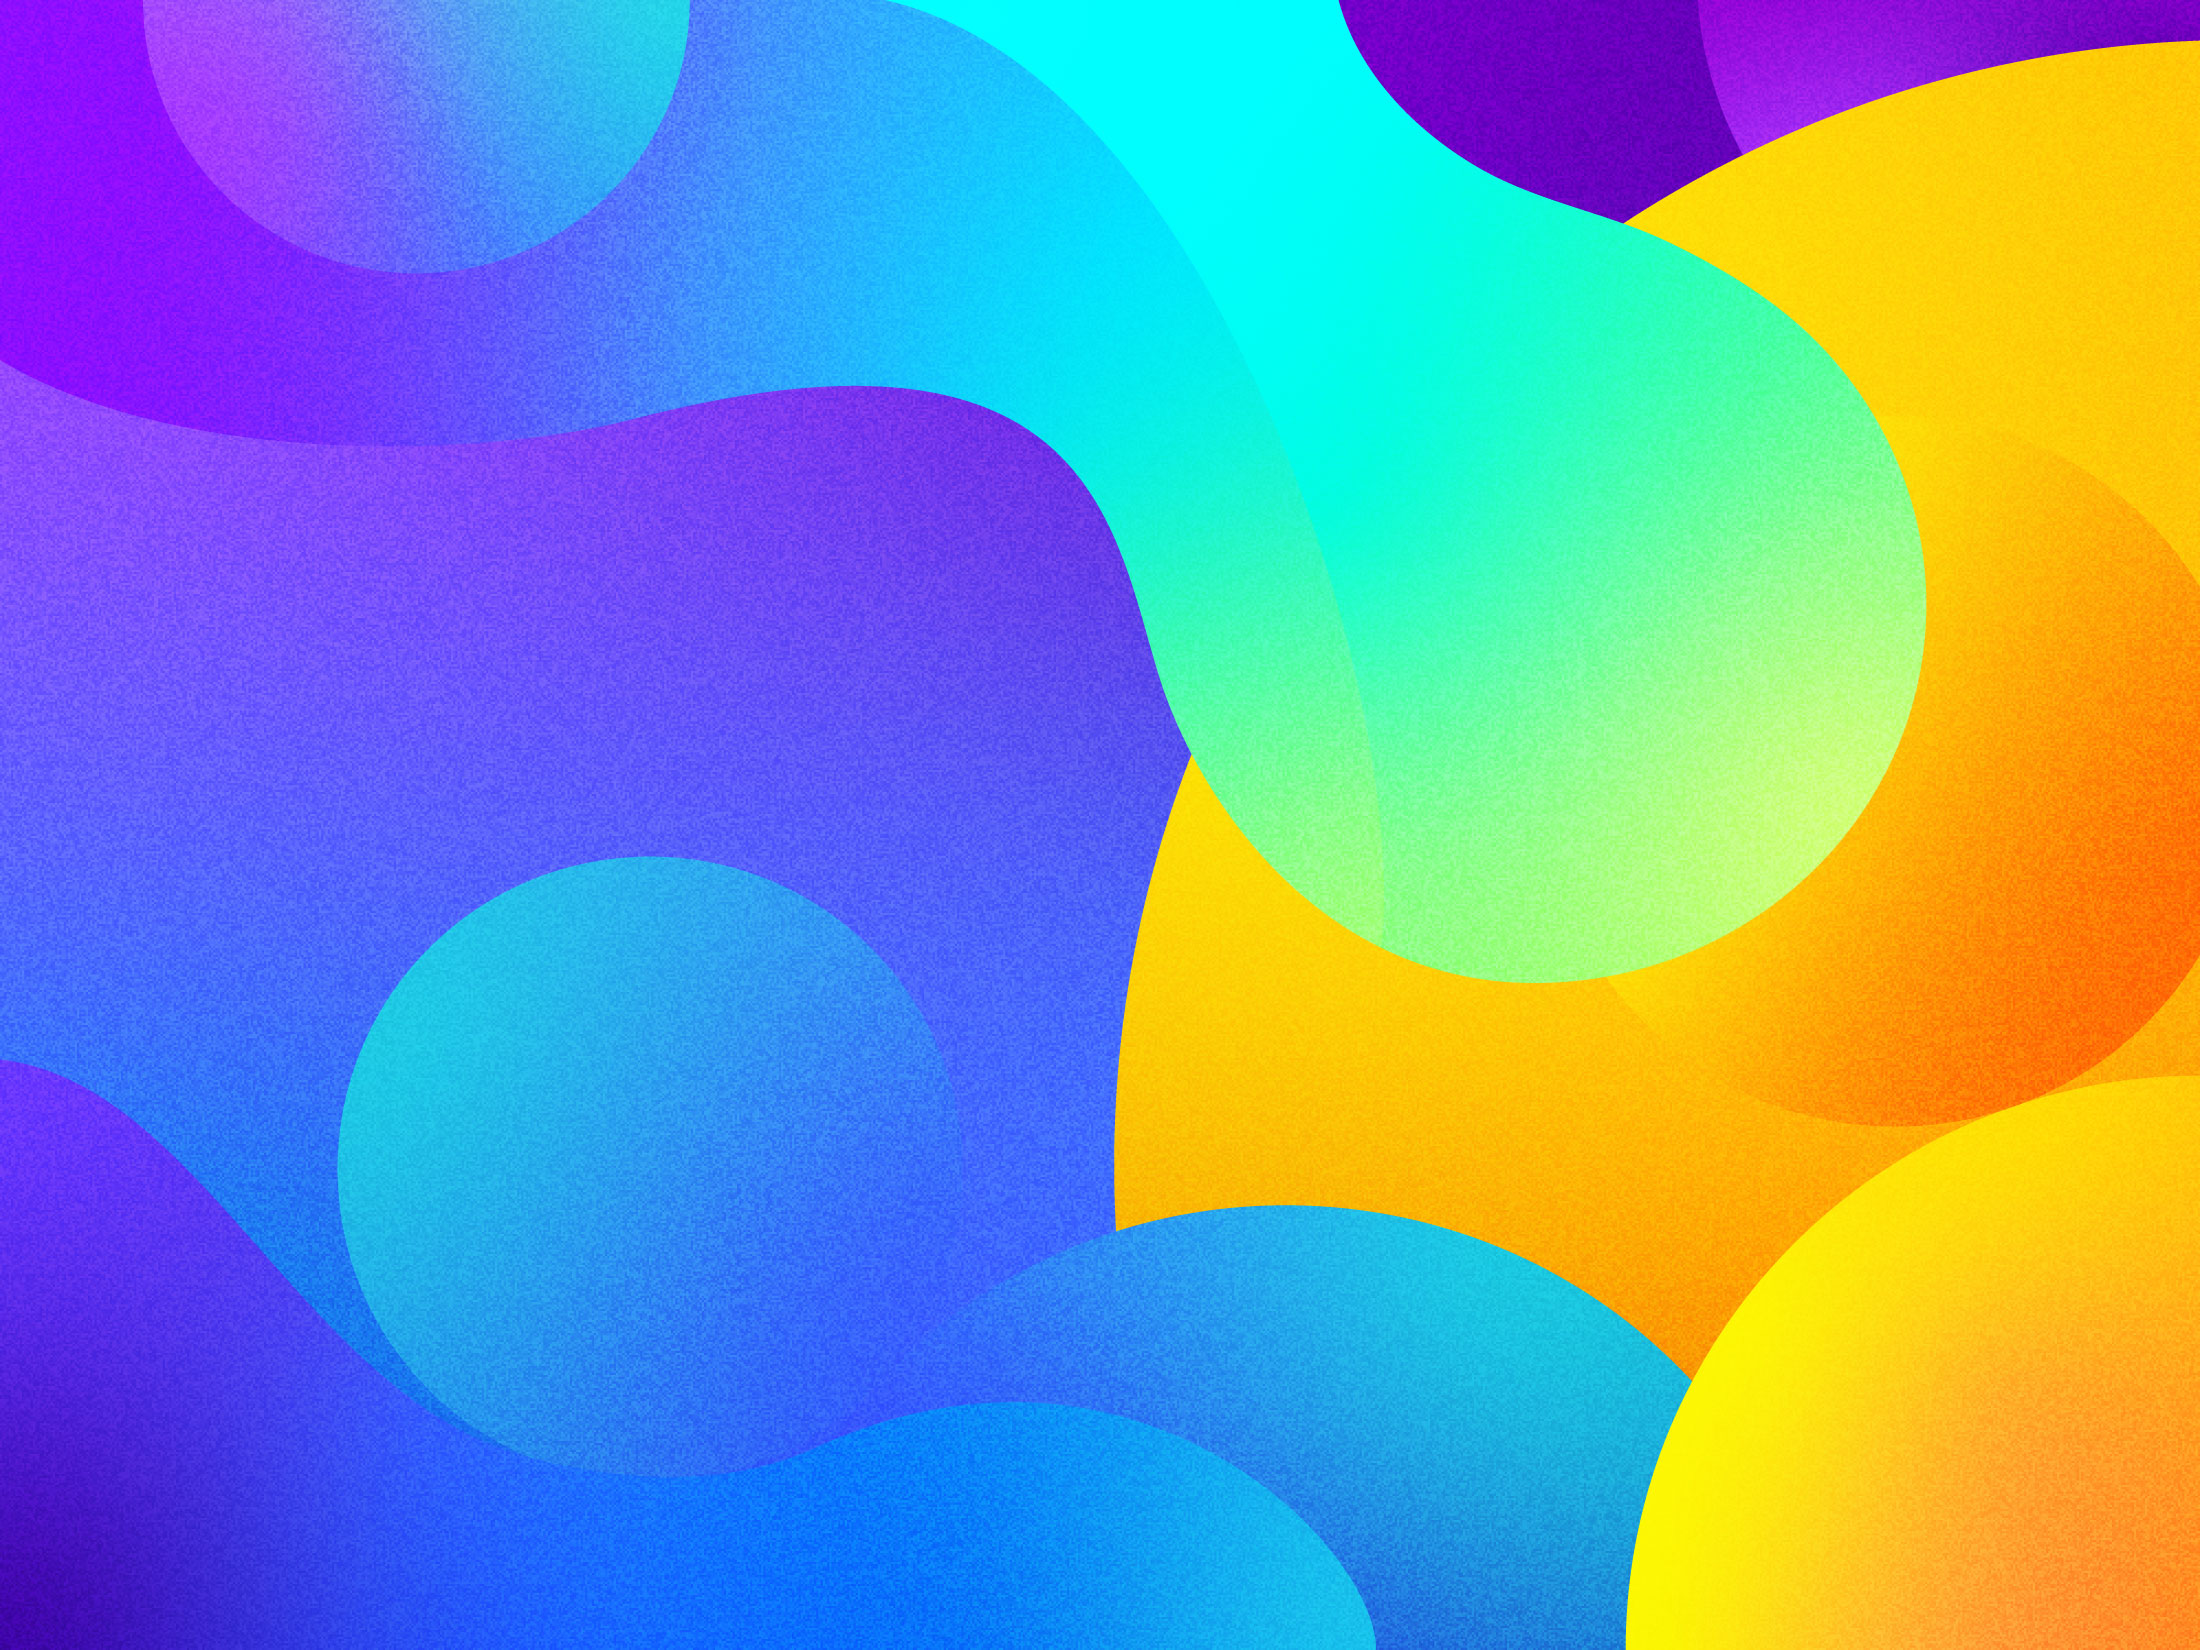 Abstract Fluid Background Download Free Vector Art Stock Graphics Amp Images